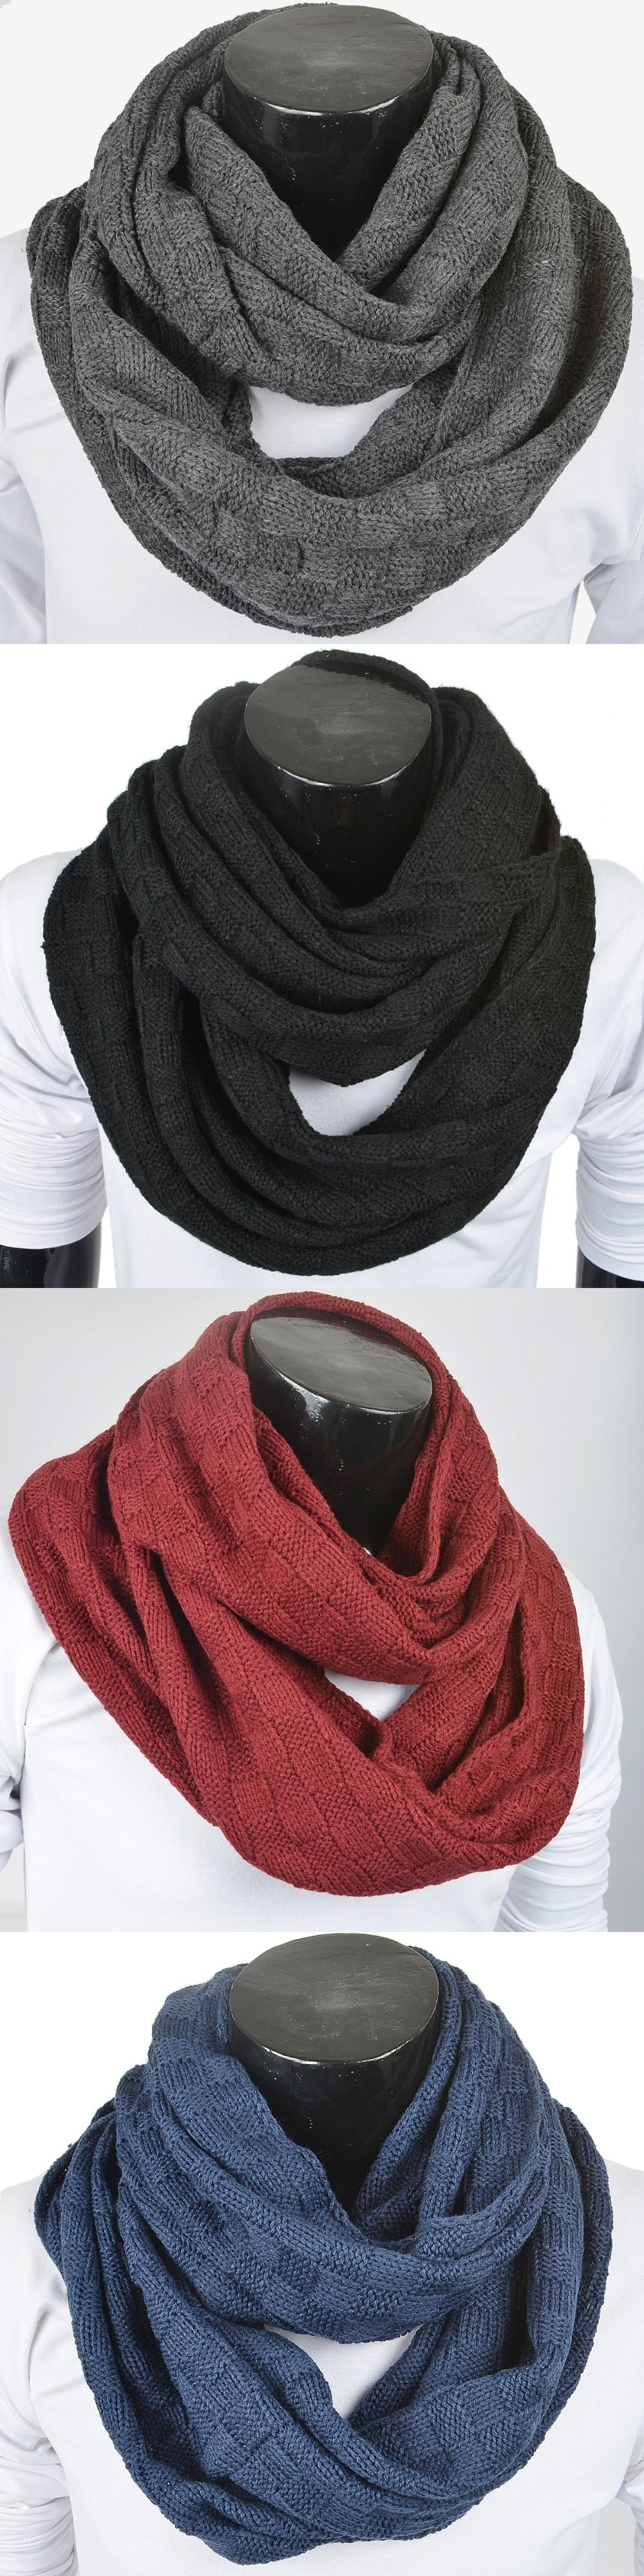 shirt summer co infinity jewelry mens scarf img winter op erieairfair saveenlarge galery womens project fabric minute men refashion scarves into